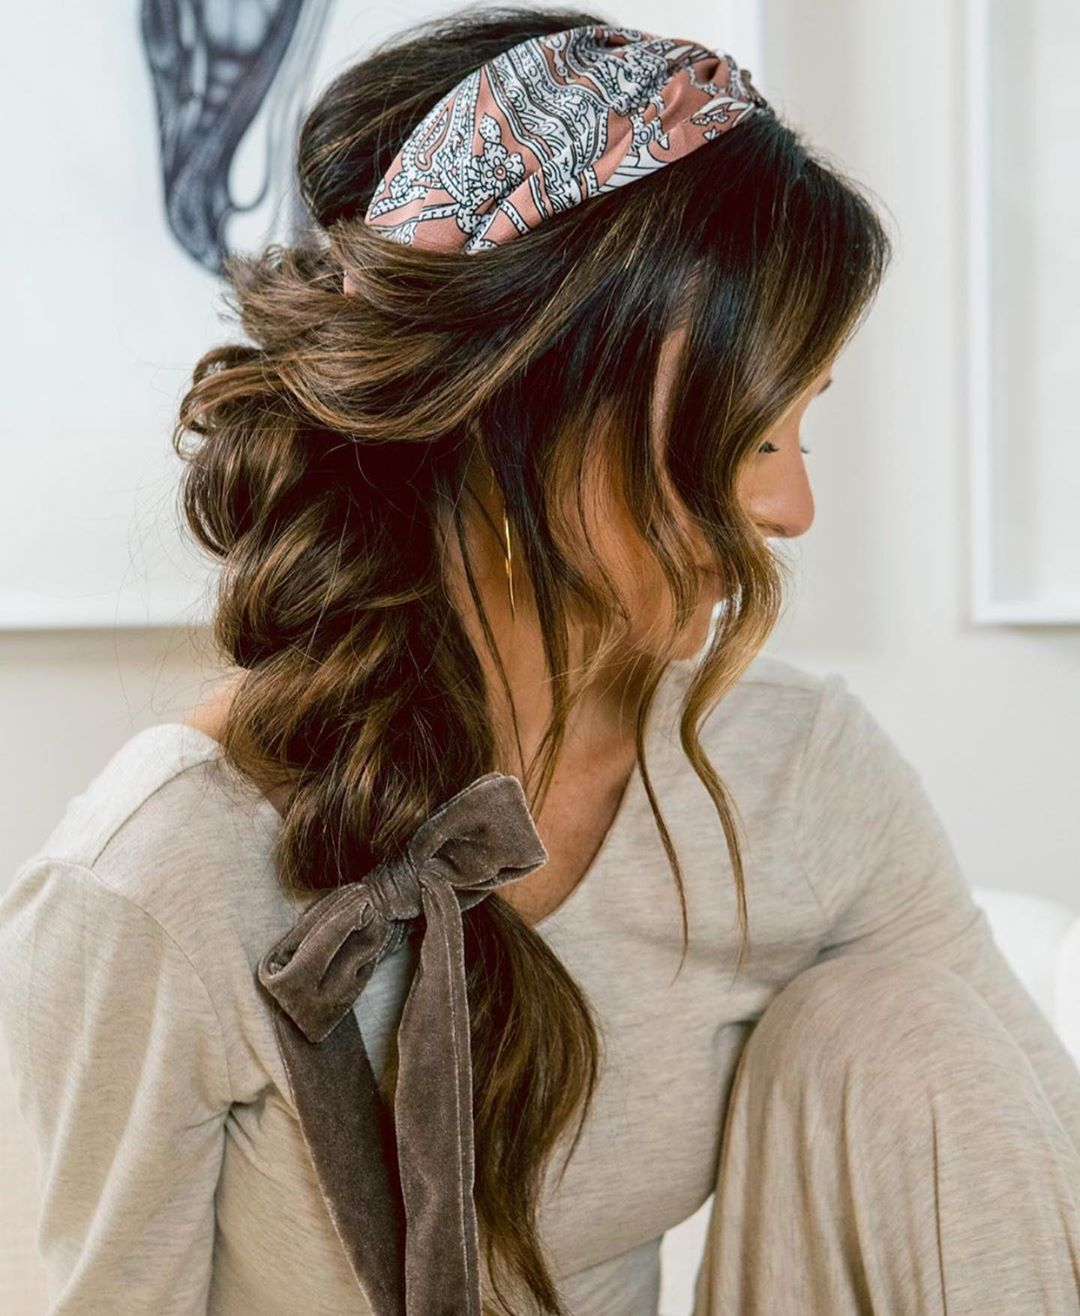 10 Trendy Braided Hairstyles in Summer - Hairstyles for ...